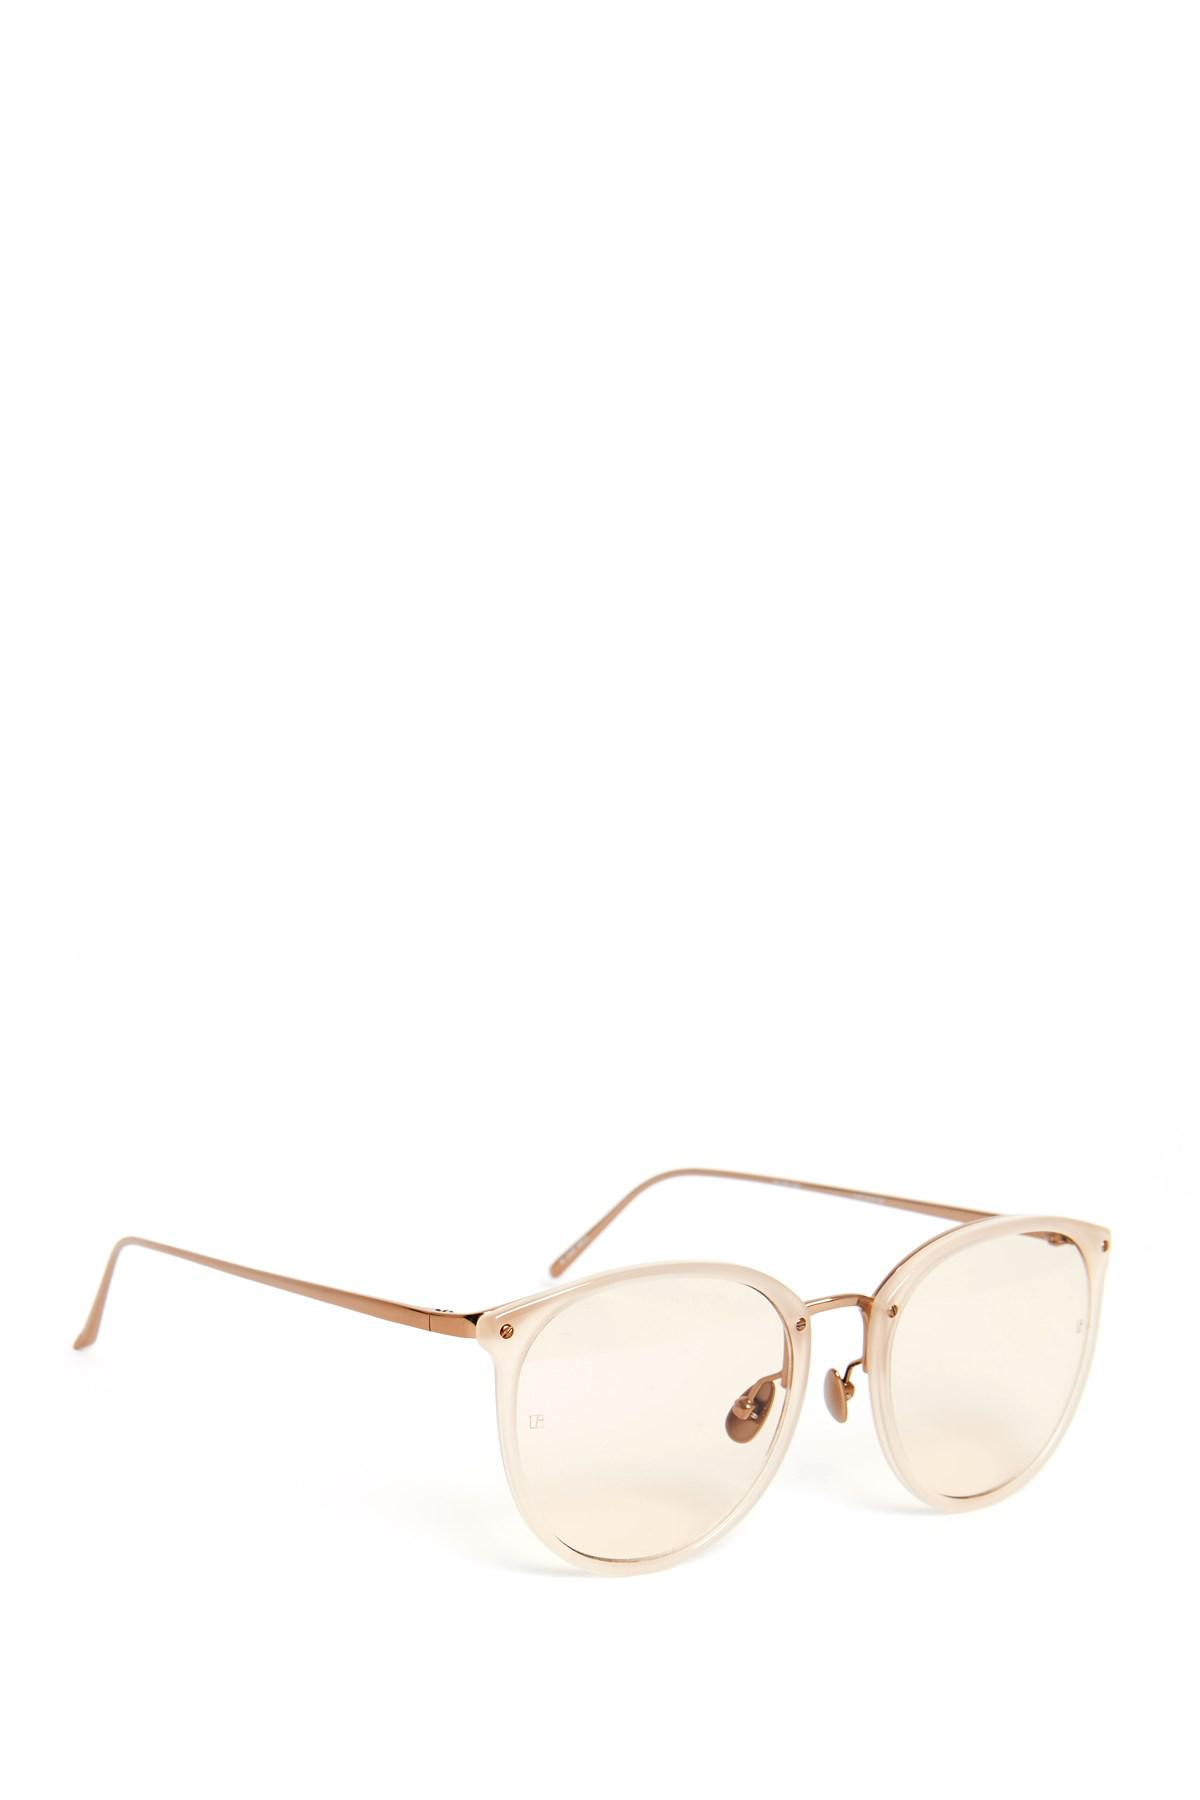 9a5f4d3a173 Lyst - Linda Farrow Rose Gold Oval Optical Frame Sunglasses in Metallic